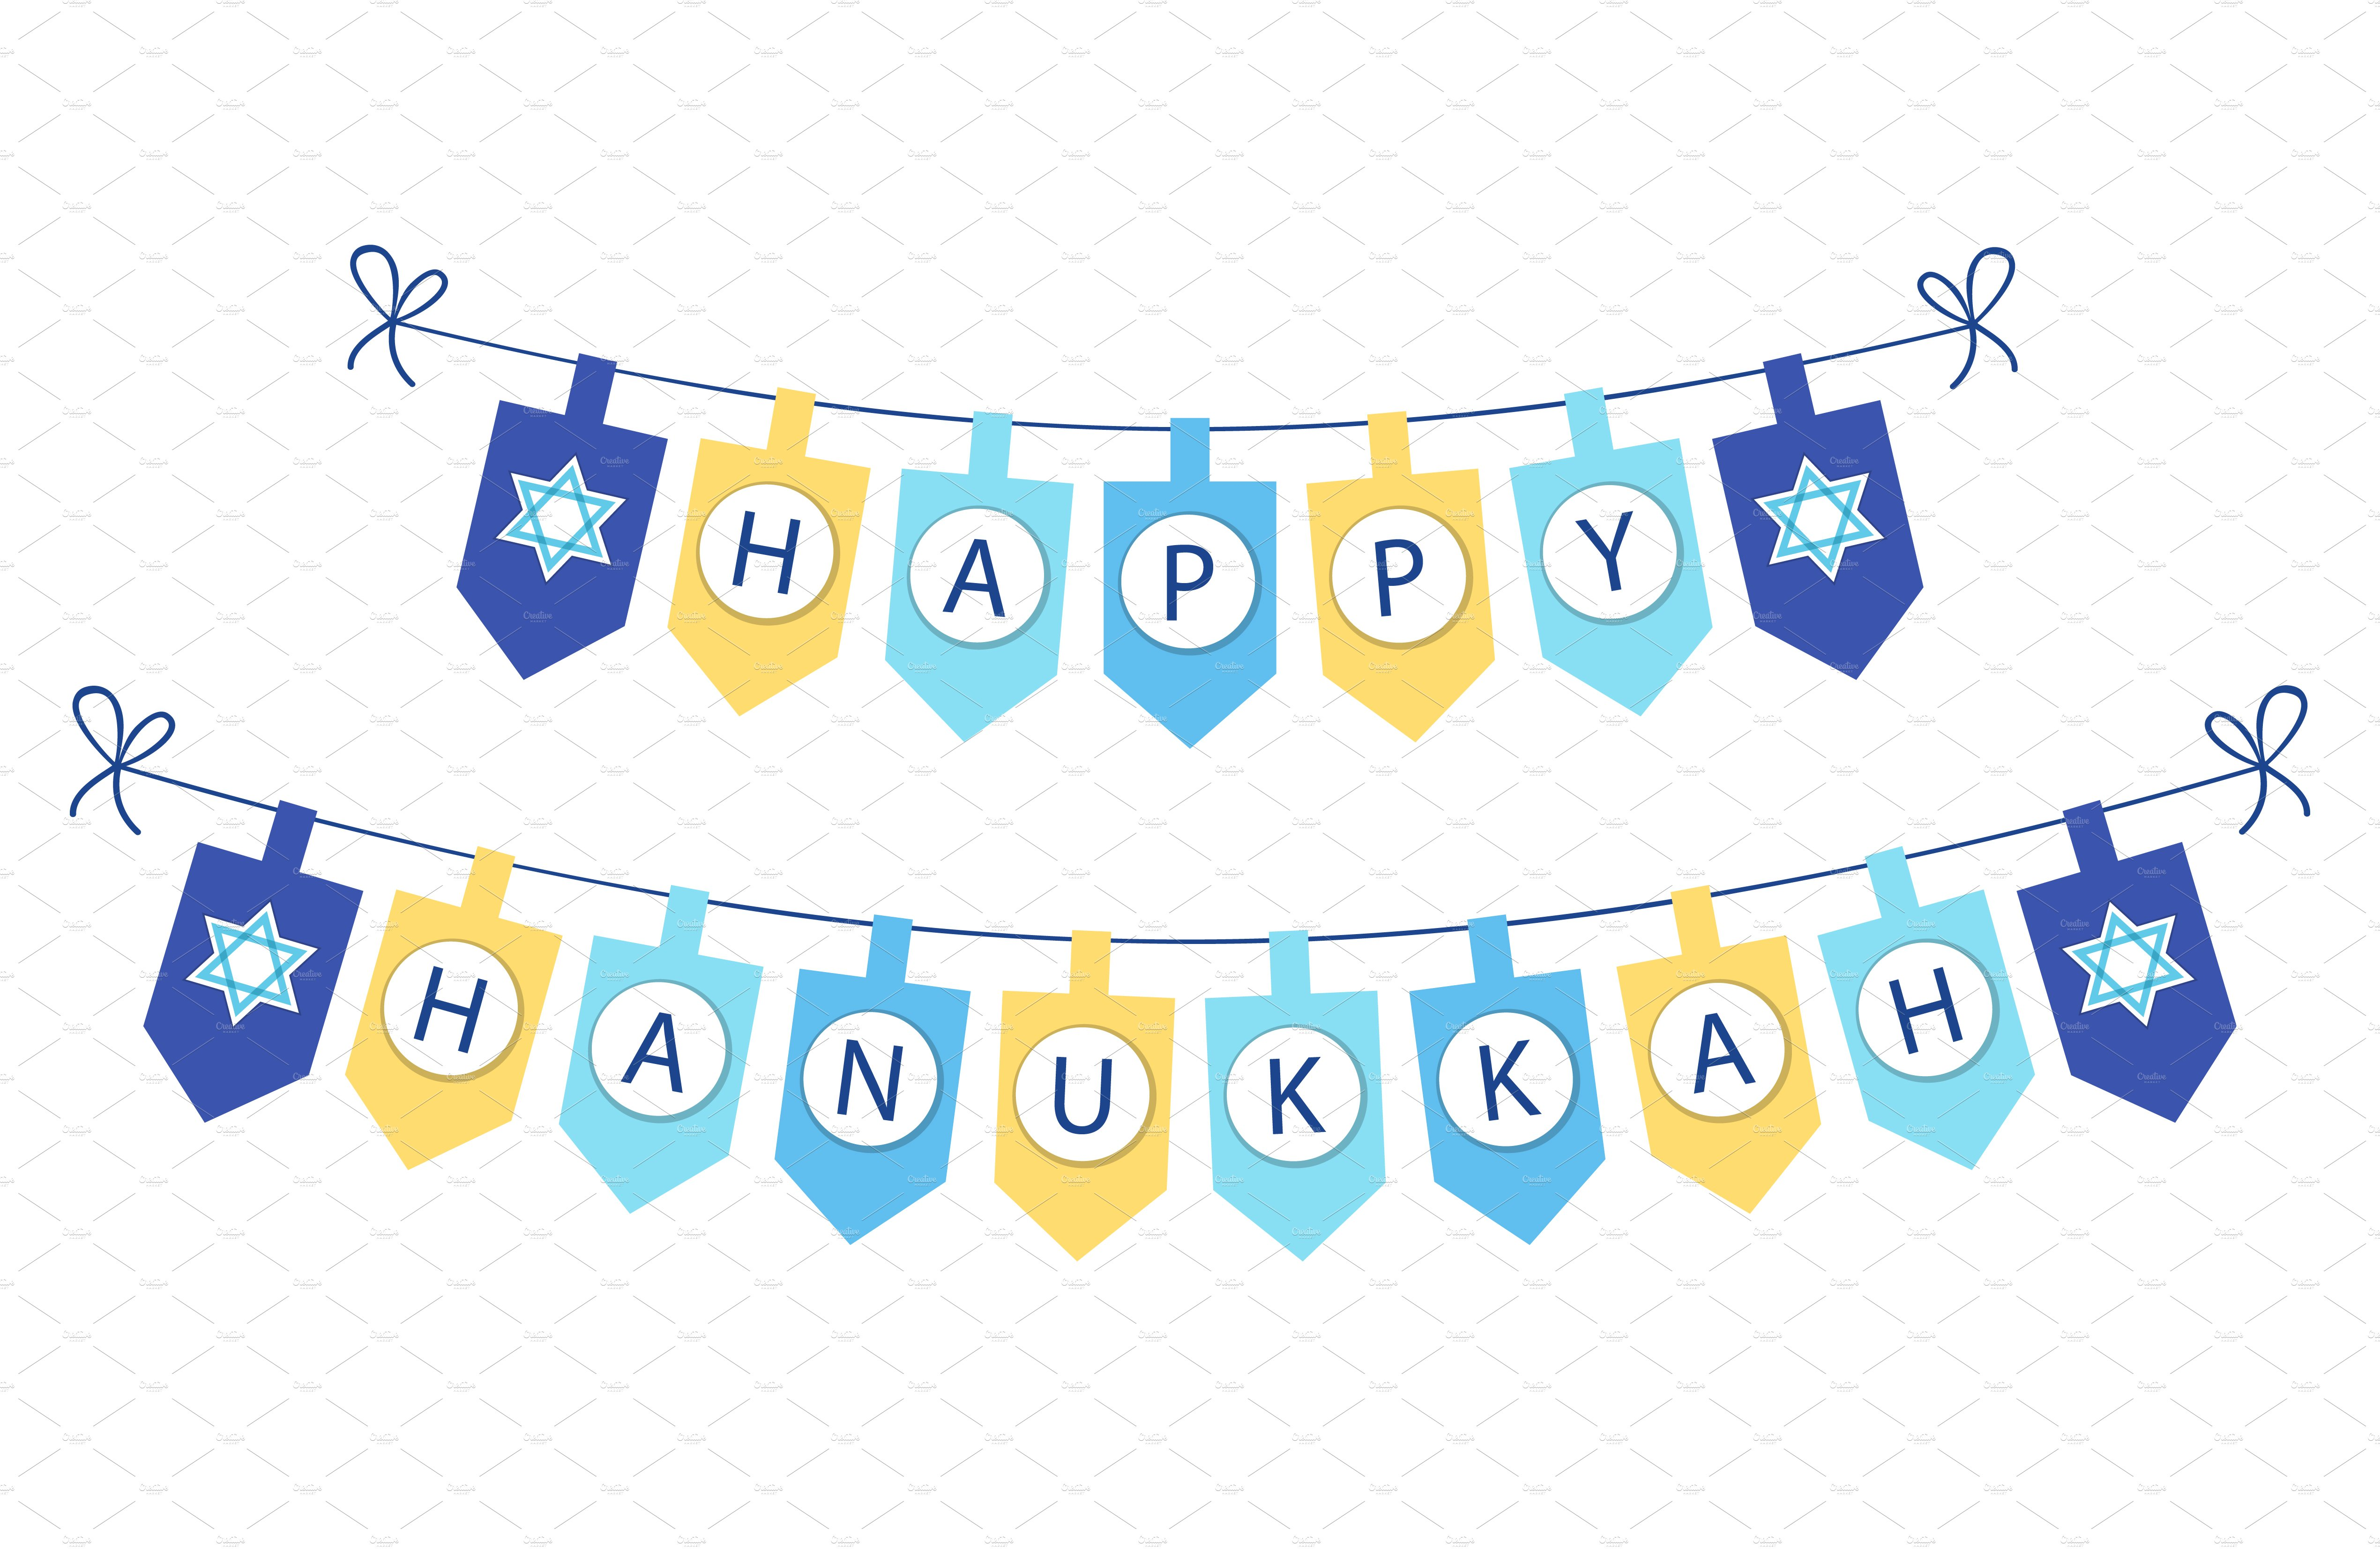 Happy Hanukkah Bunting Flags Illustrations Creative Market